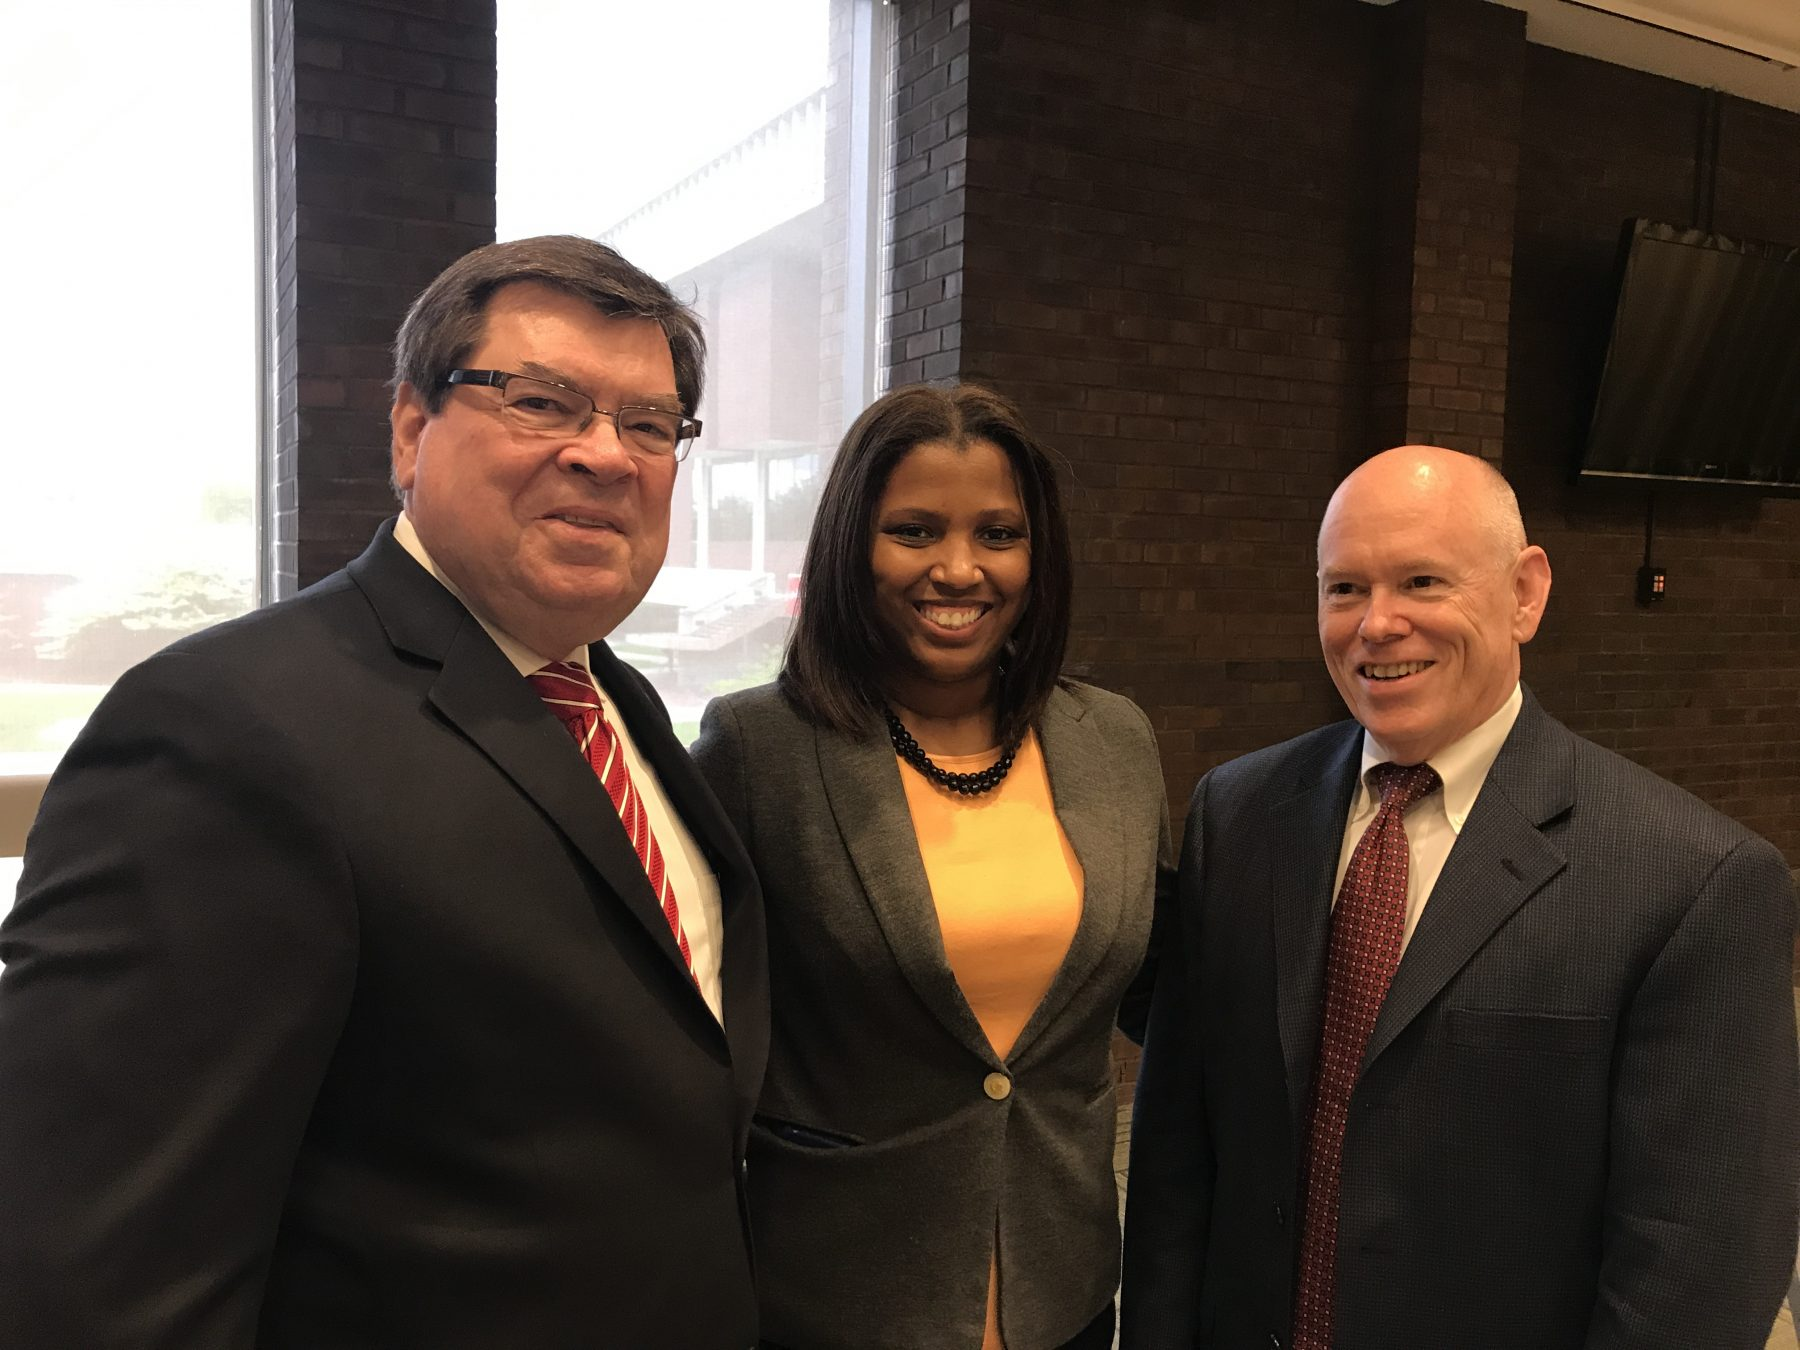 Professors Tiffany Puckett and Thomas McClure (right) with President Larry Dietz